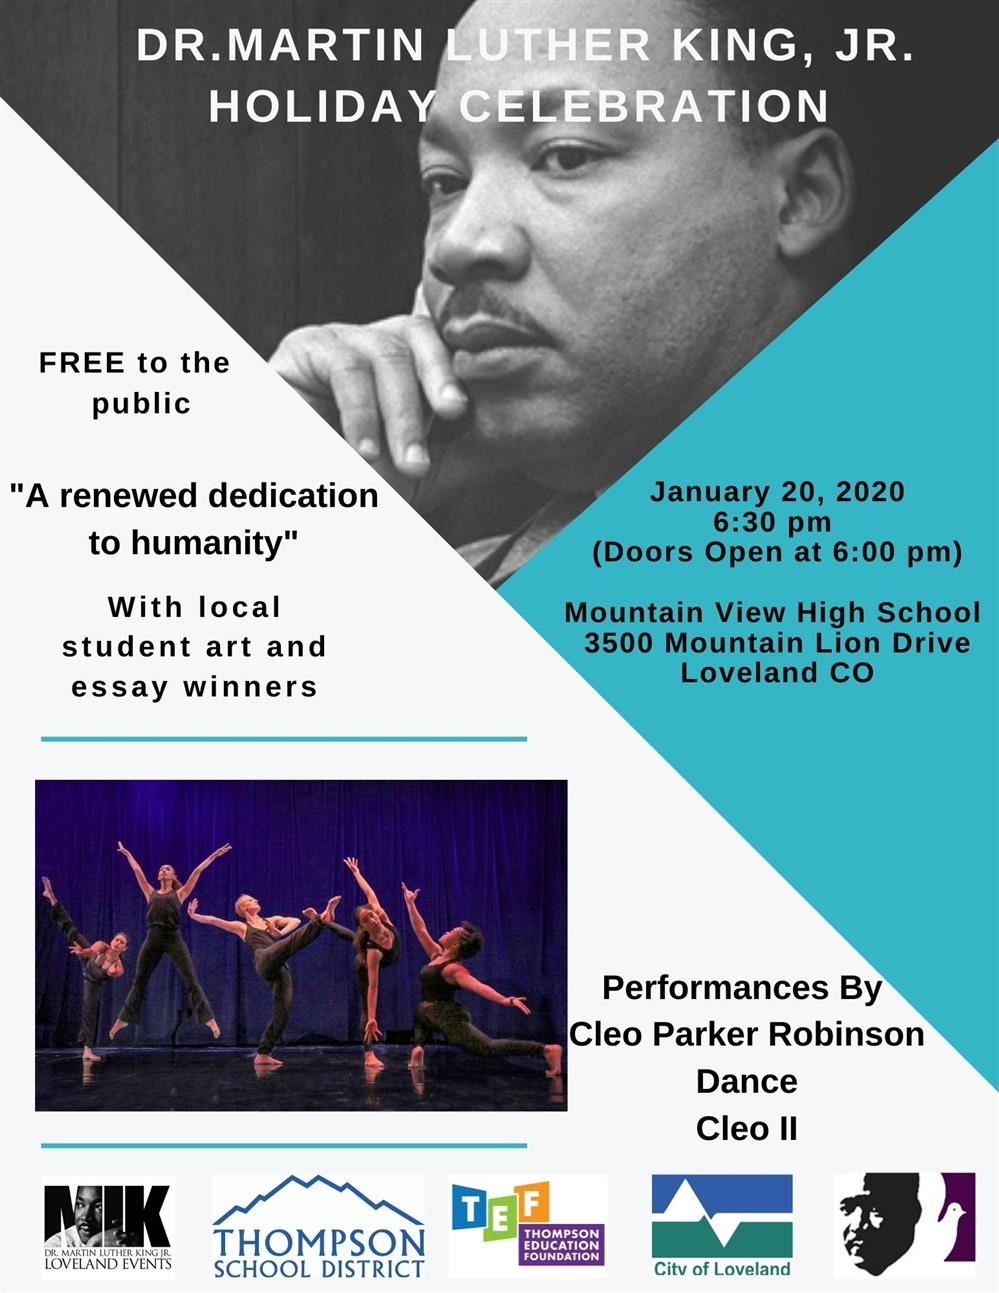 Dr. Martin Luther King Jr. Holiday Celebration